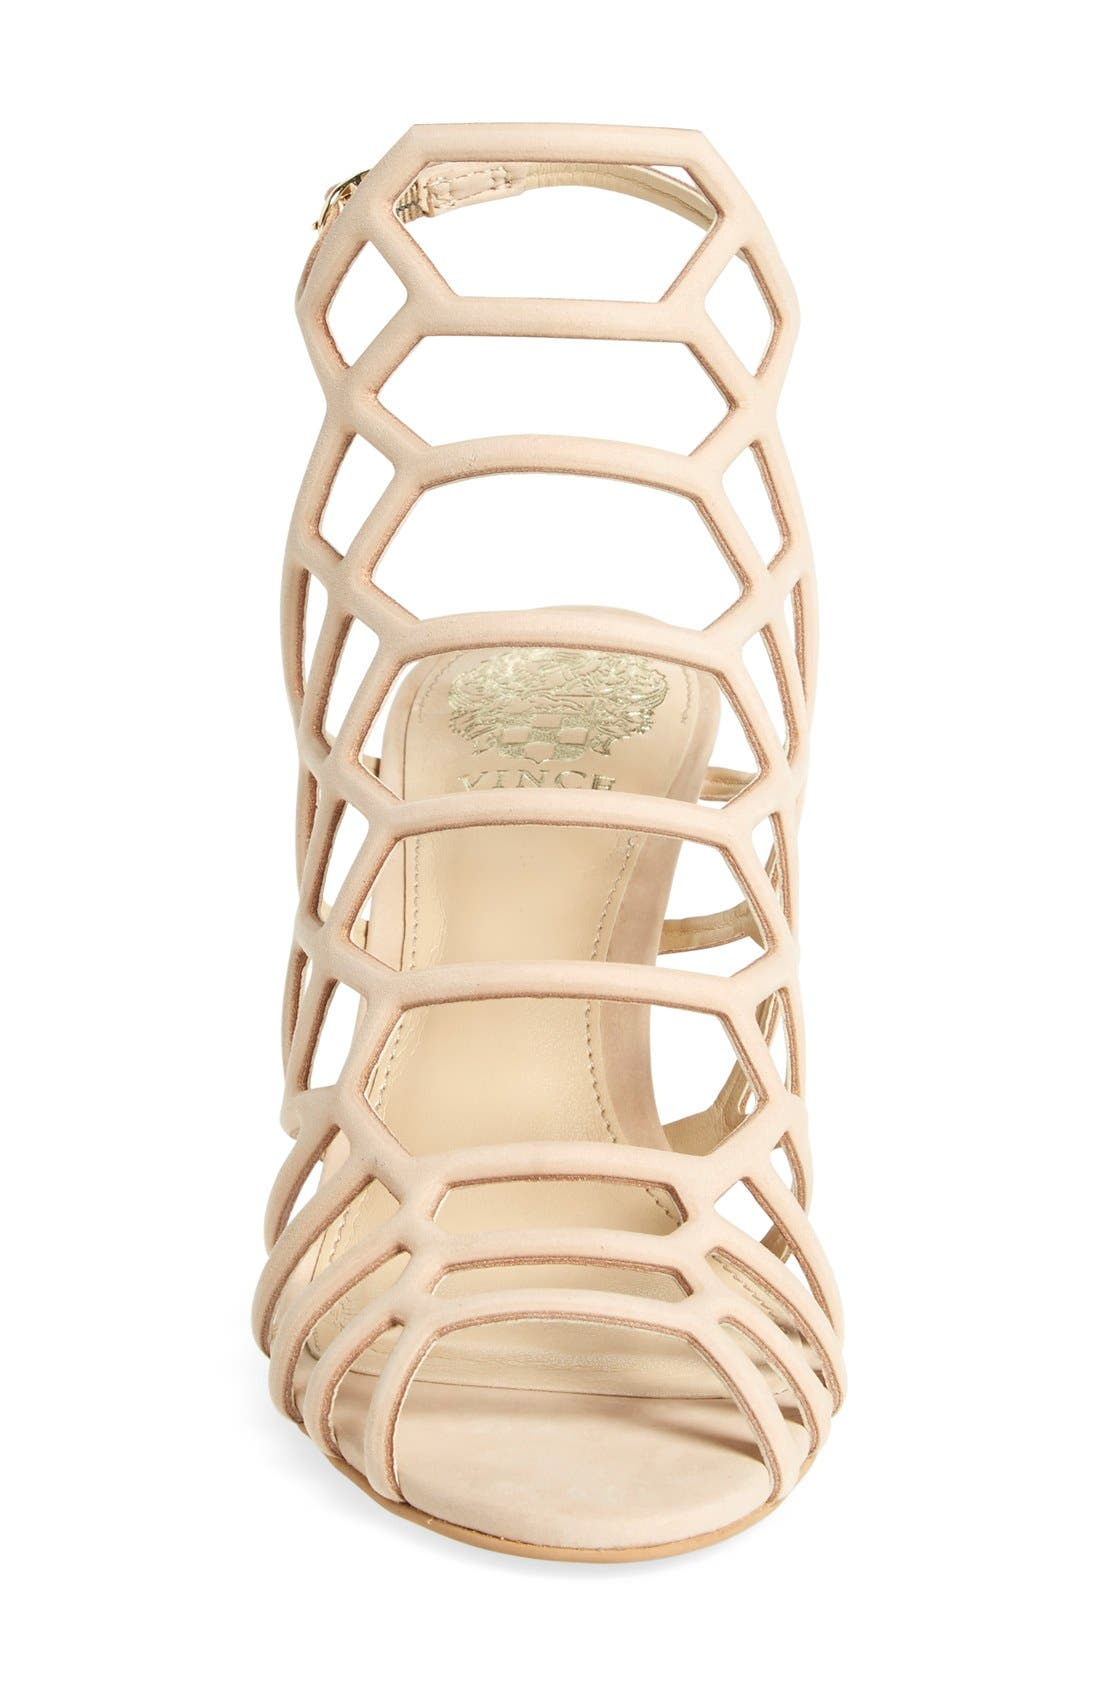 'Paxton' Slingback Sandal,                             Alternate thumbnail 3, color,                             Nude Leather